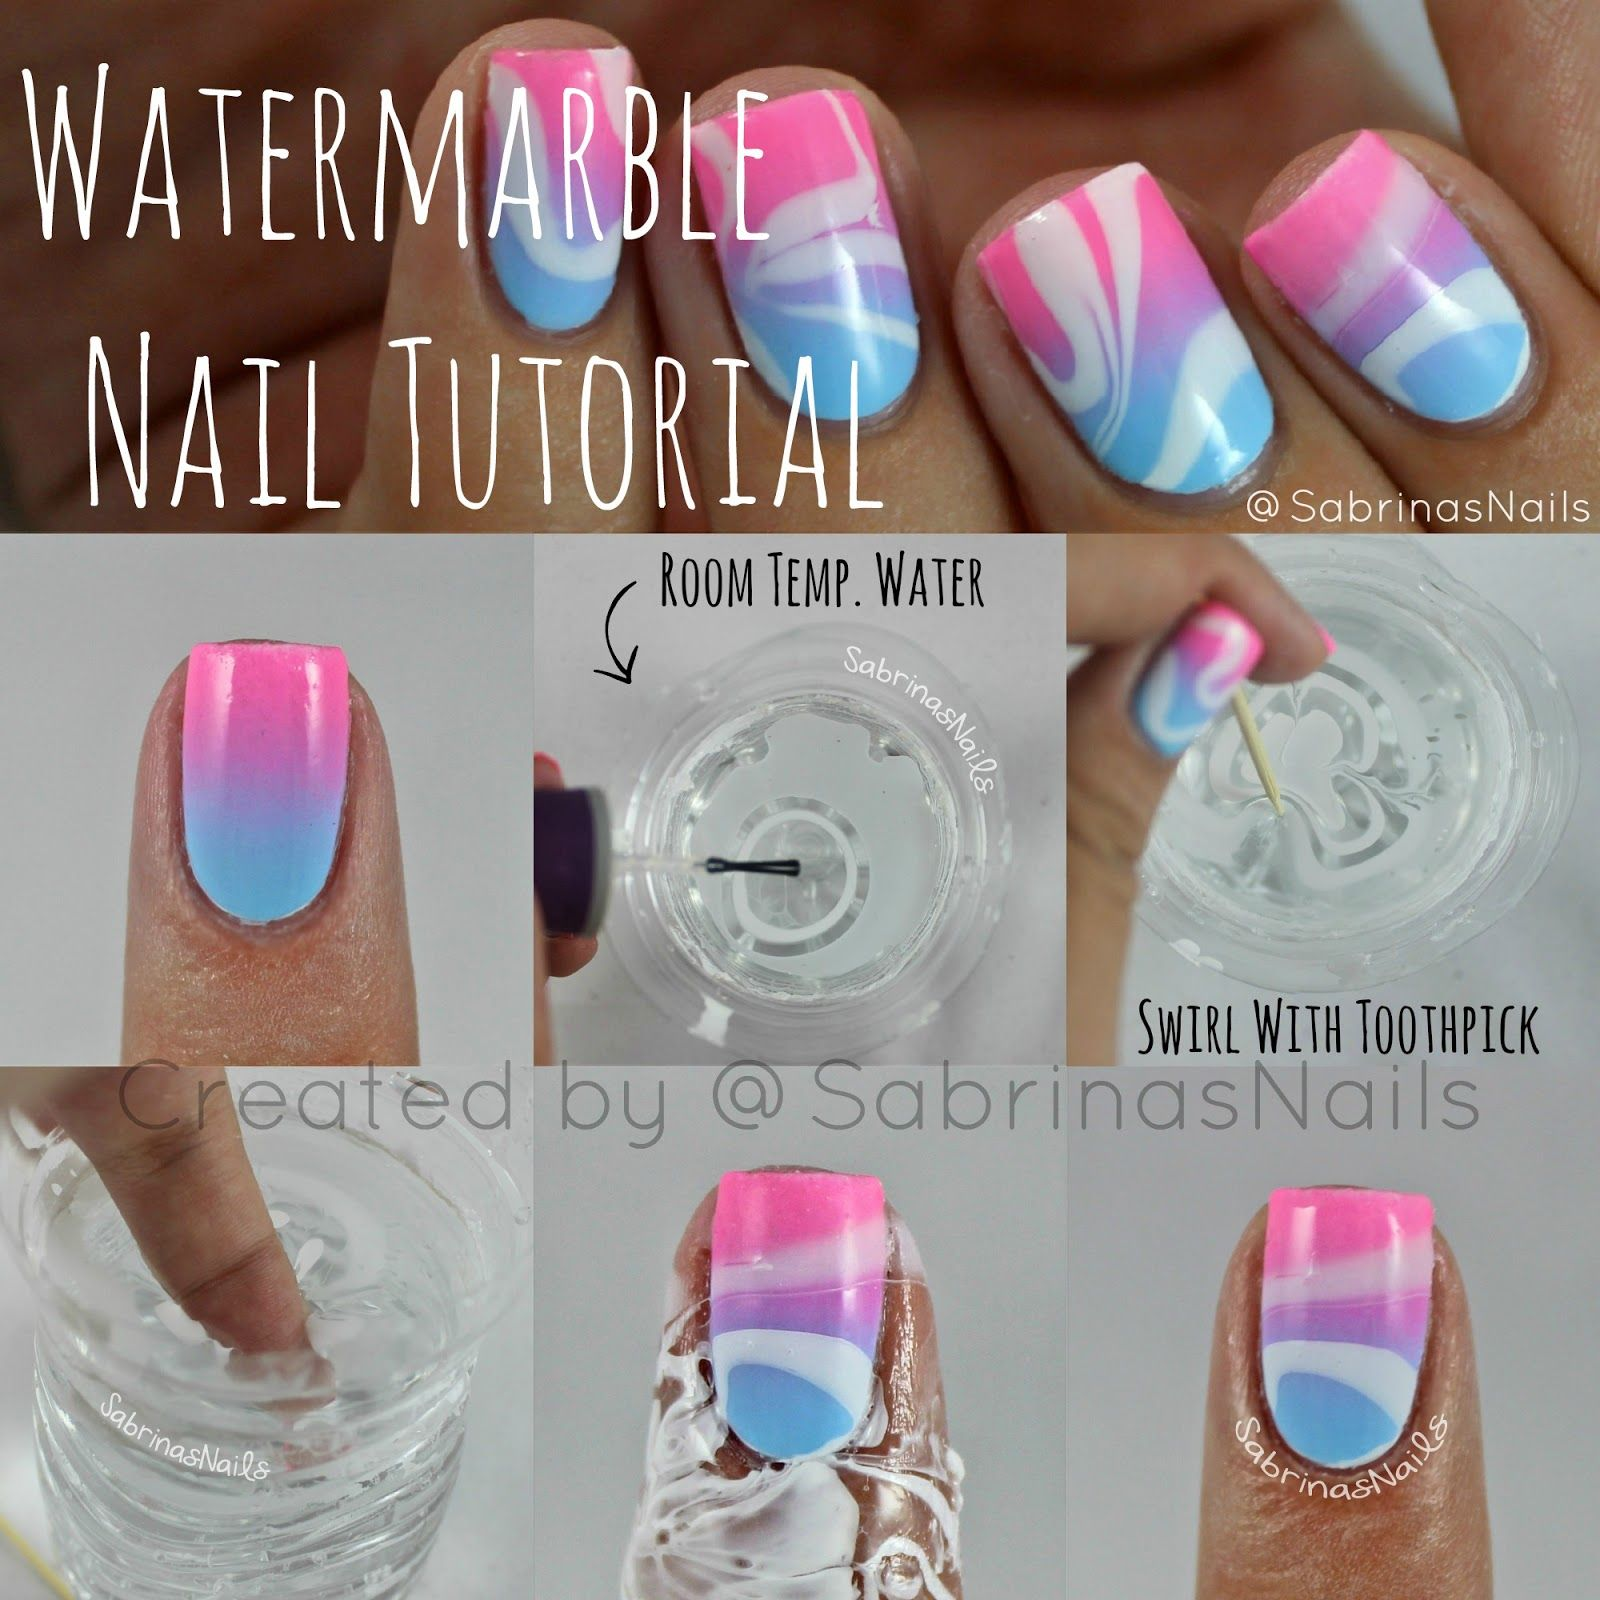 Sabrinas Nails: Watermarble Nail Tutorial | nails | Pinterest ...